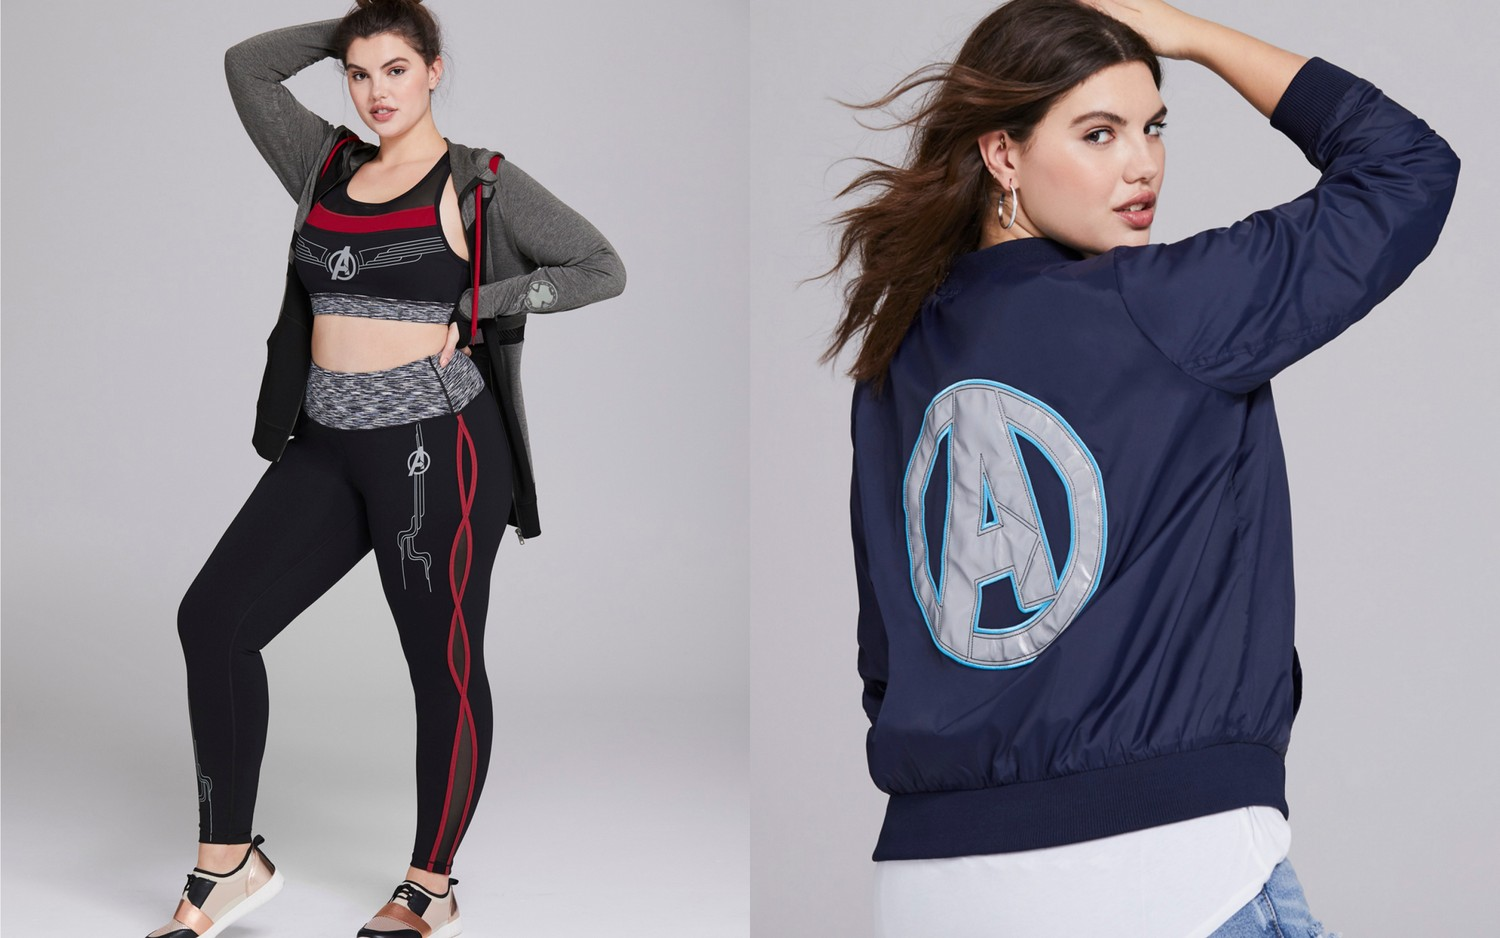 ec4aad932fe Watch the Avenger s Endgame in Style with Torrid s Avengers Collection!